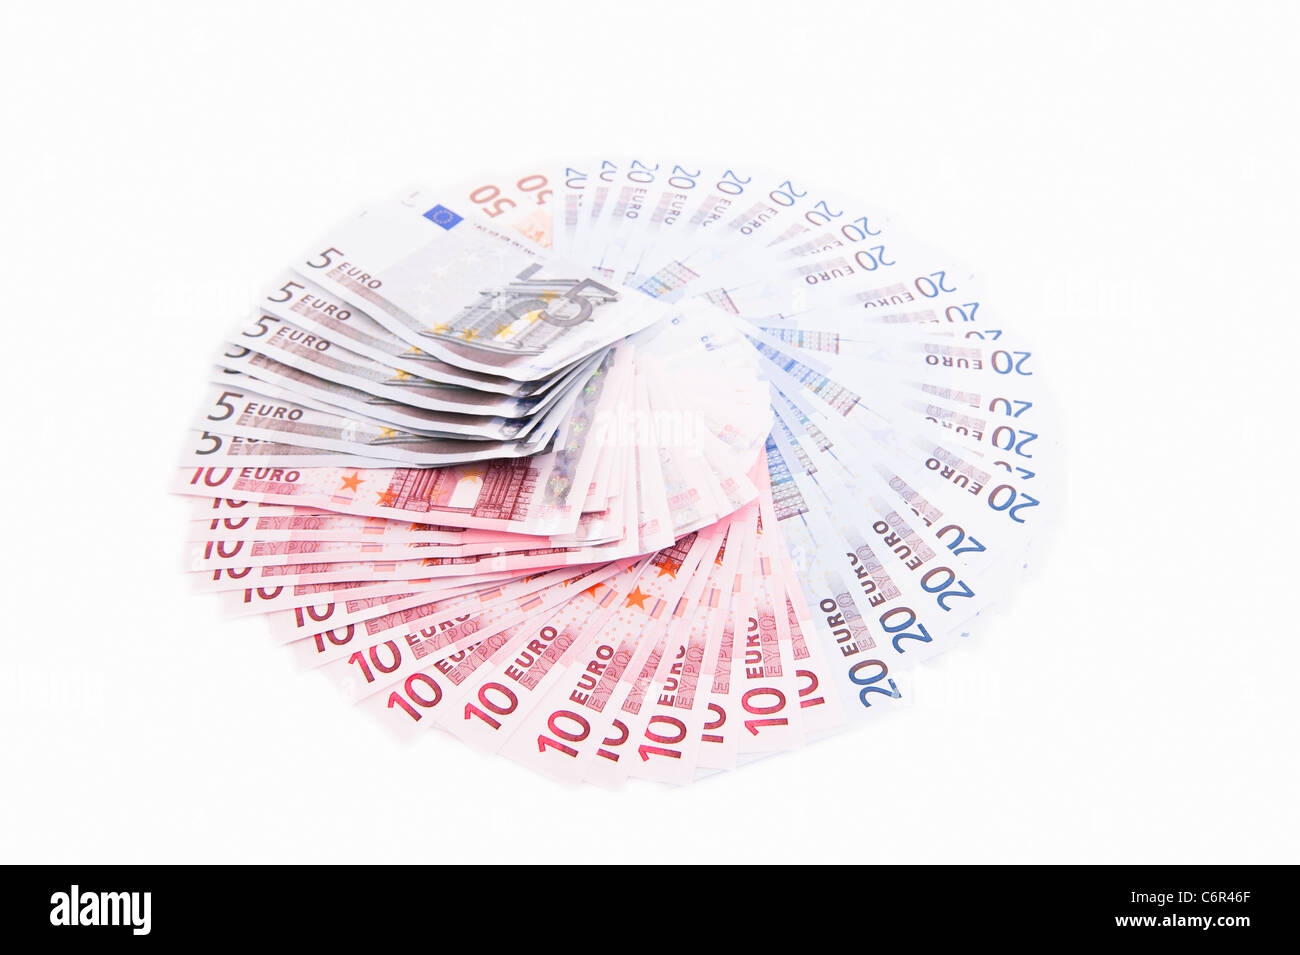 A selection of Euros on a white background - Stock Image